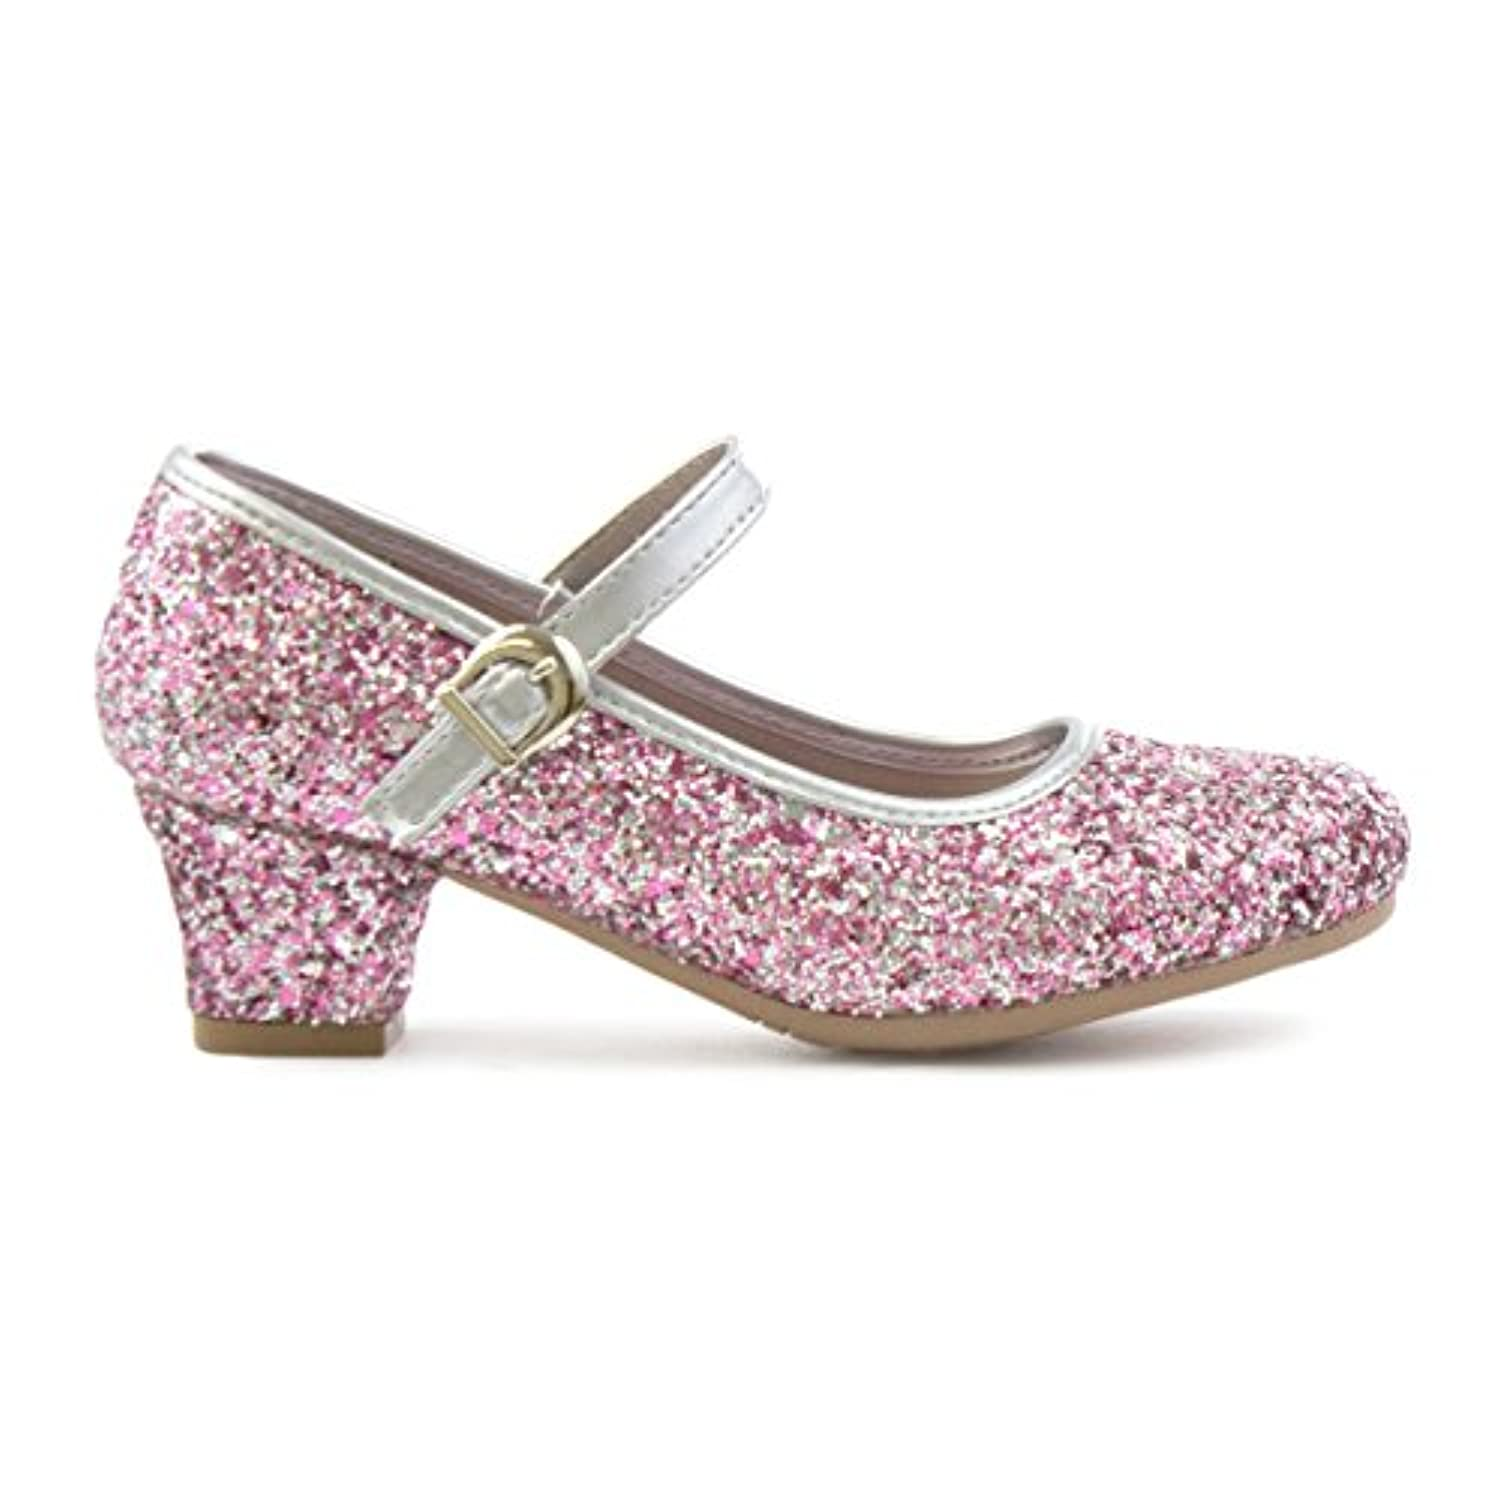 Lilley Sparkle Girls Silver and Pink Bar Shoe - Size 2 - Pink